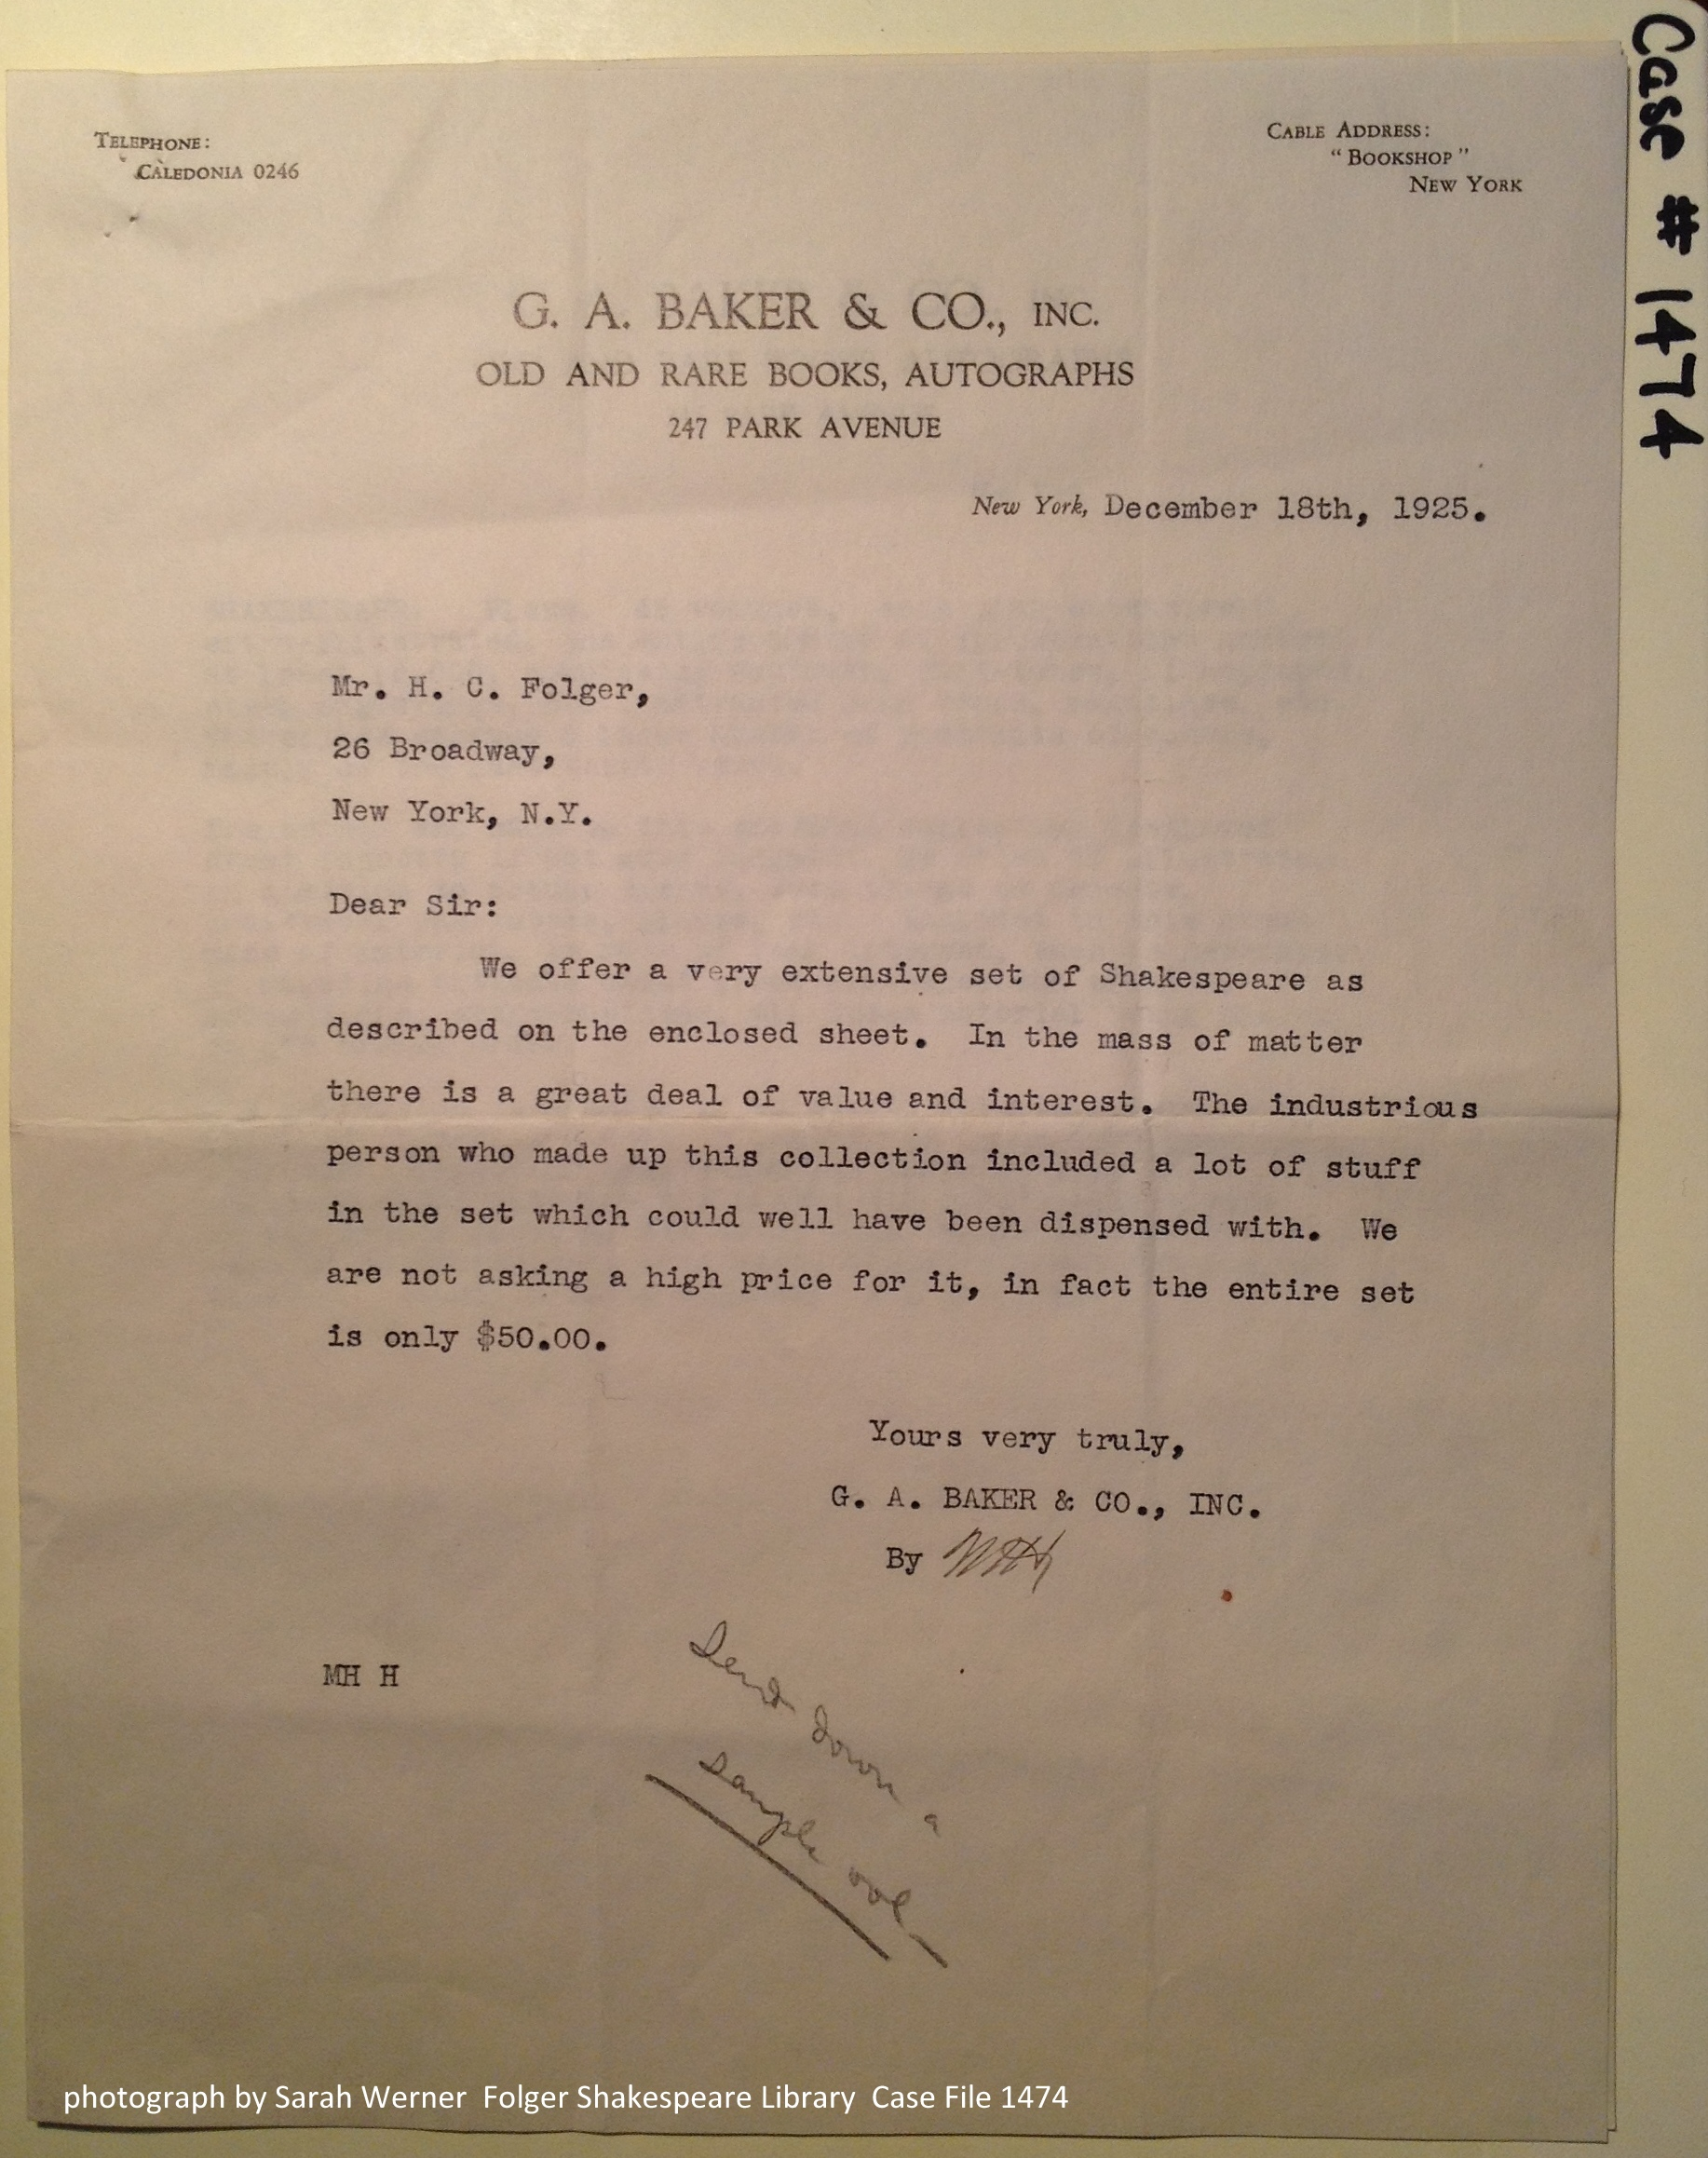 The dealer's letter to Mr Folger offering the collection of scrapbooks.